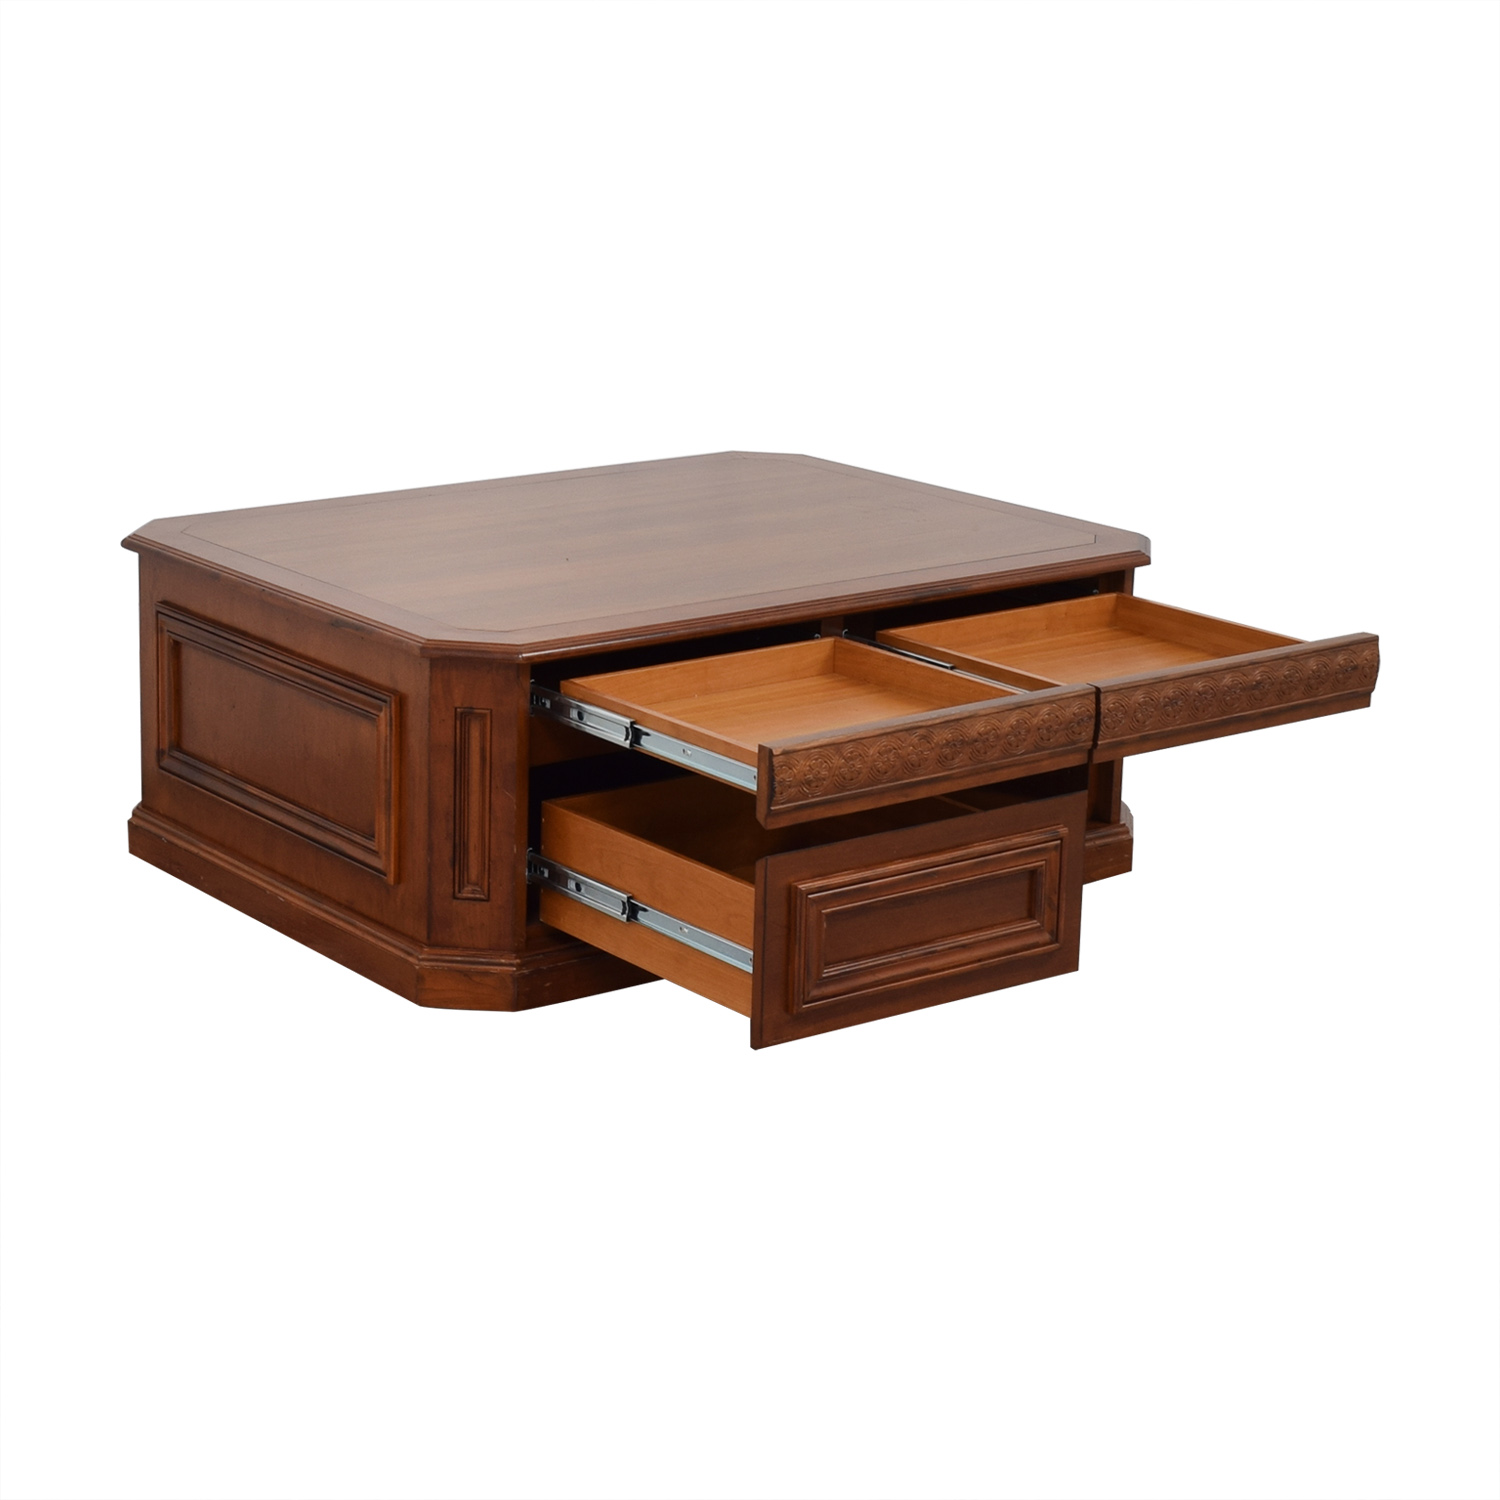 Coffee Table with Drawers for sale